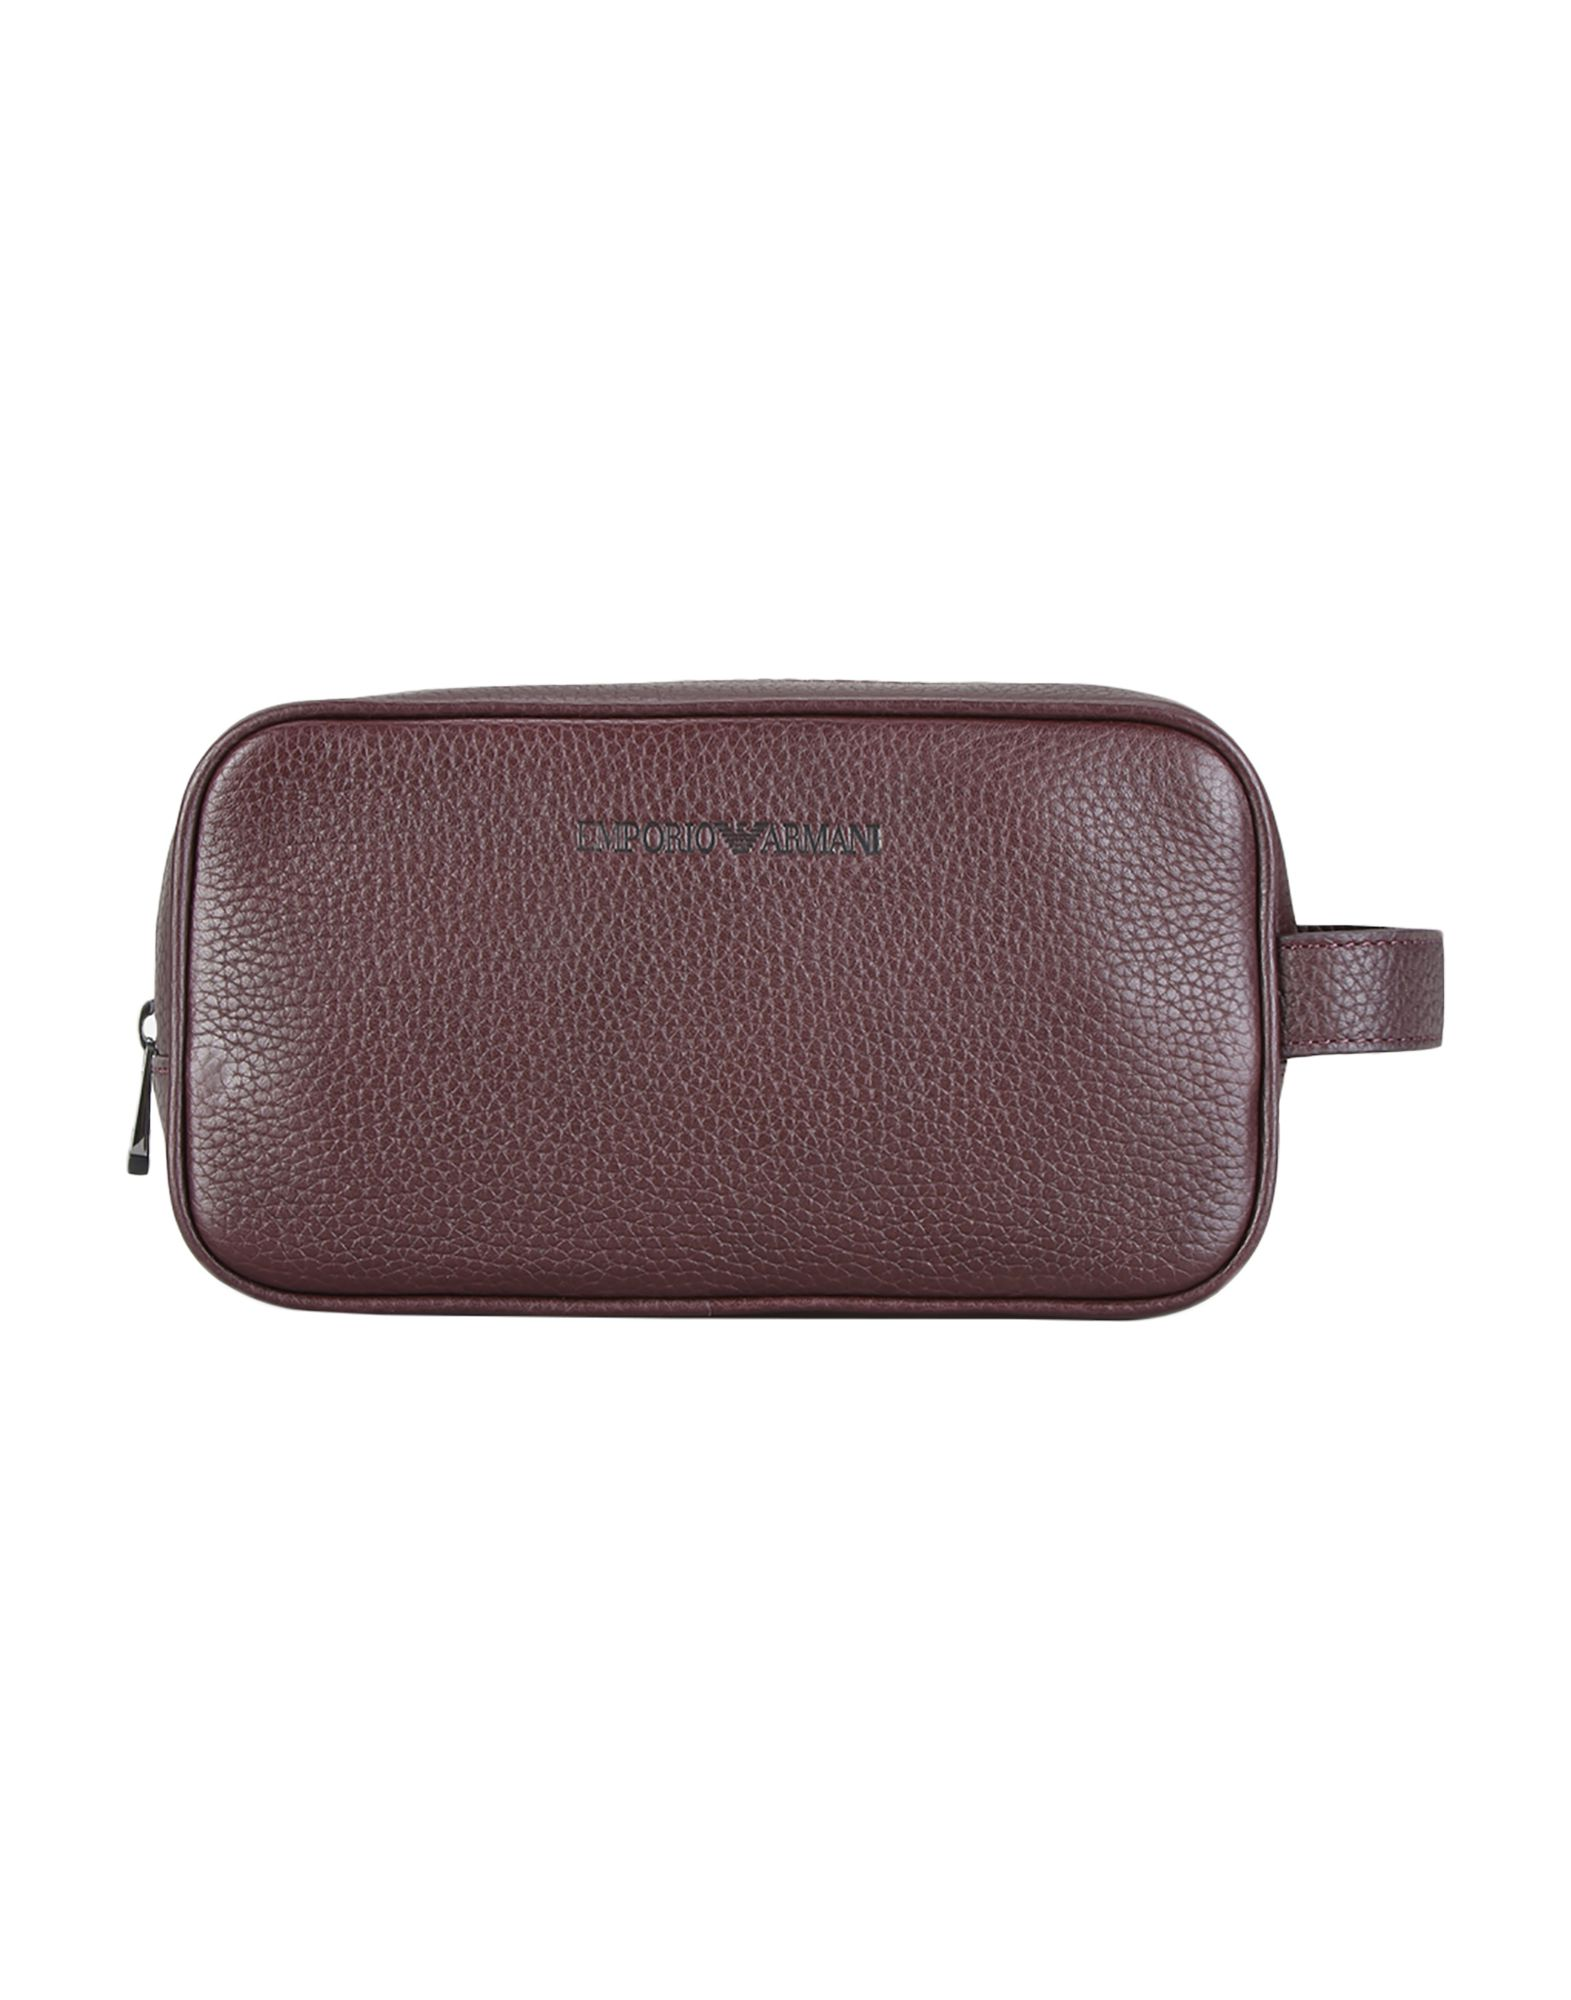 EMPORIO ARMANI Beauty case pinetti beauty case